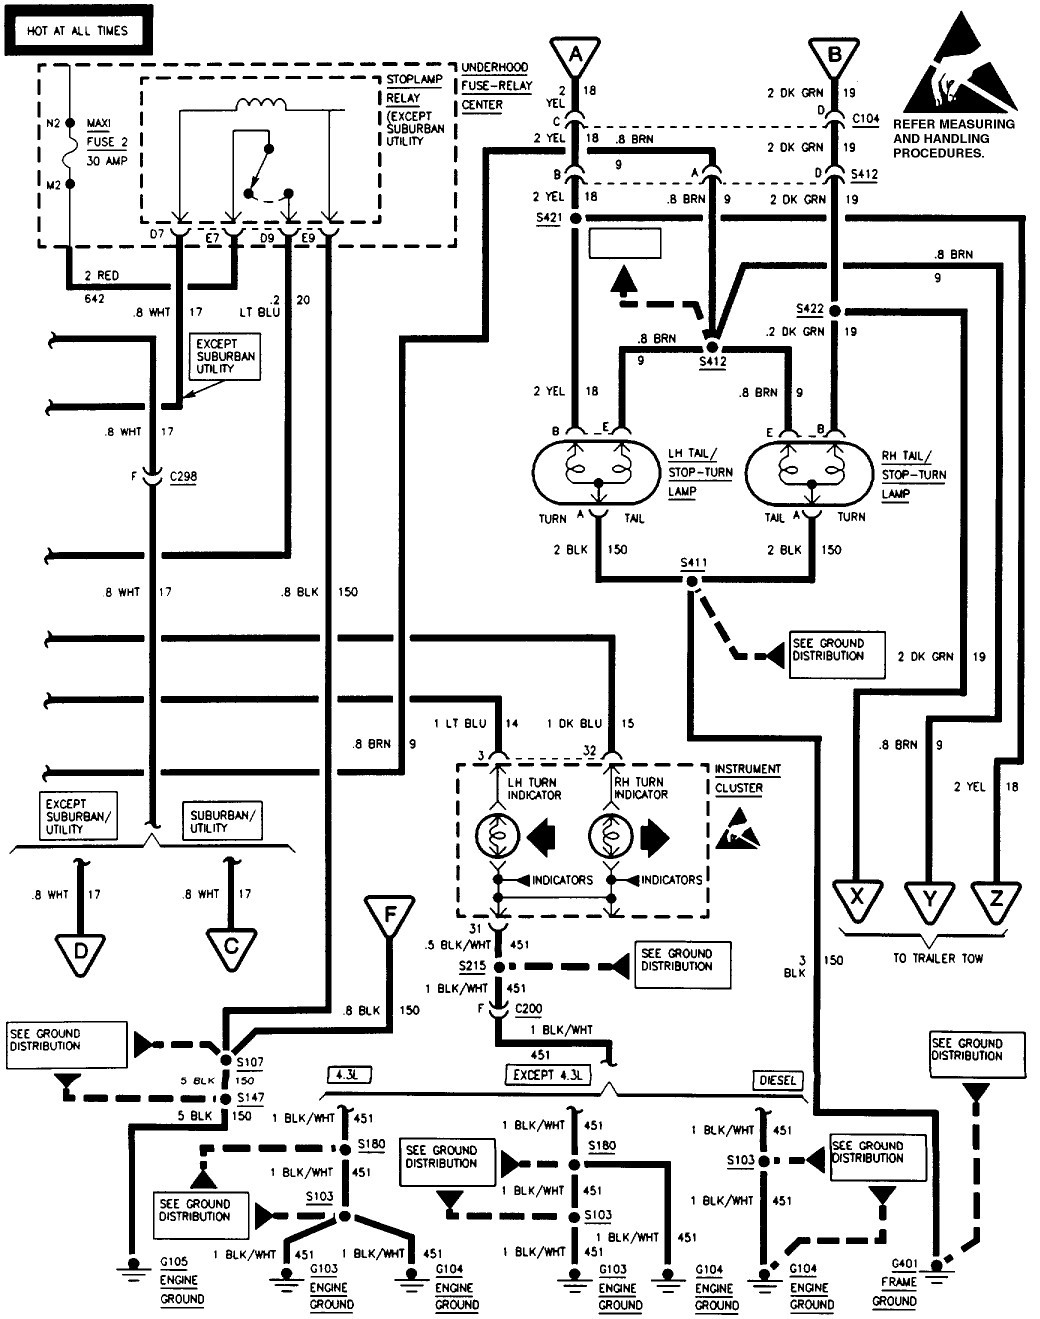 Brake Light Wiring Diagram 1994 Gmc Sierra 97 Tail Free Download - 1994 Chevy Truck Brake Light Wiring Diagram